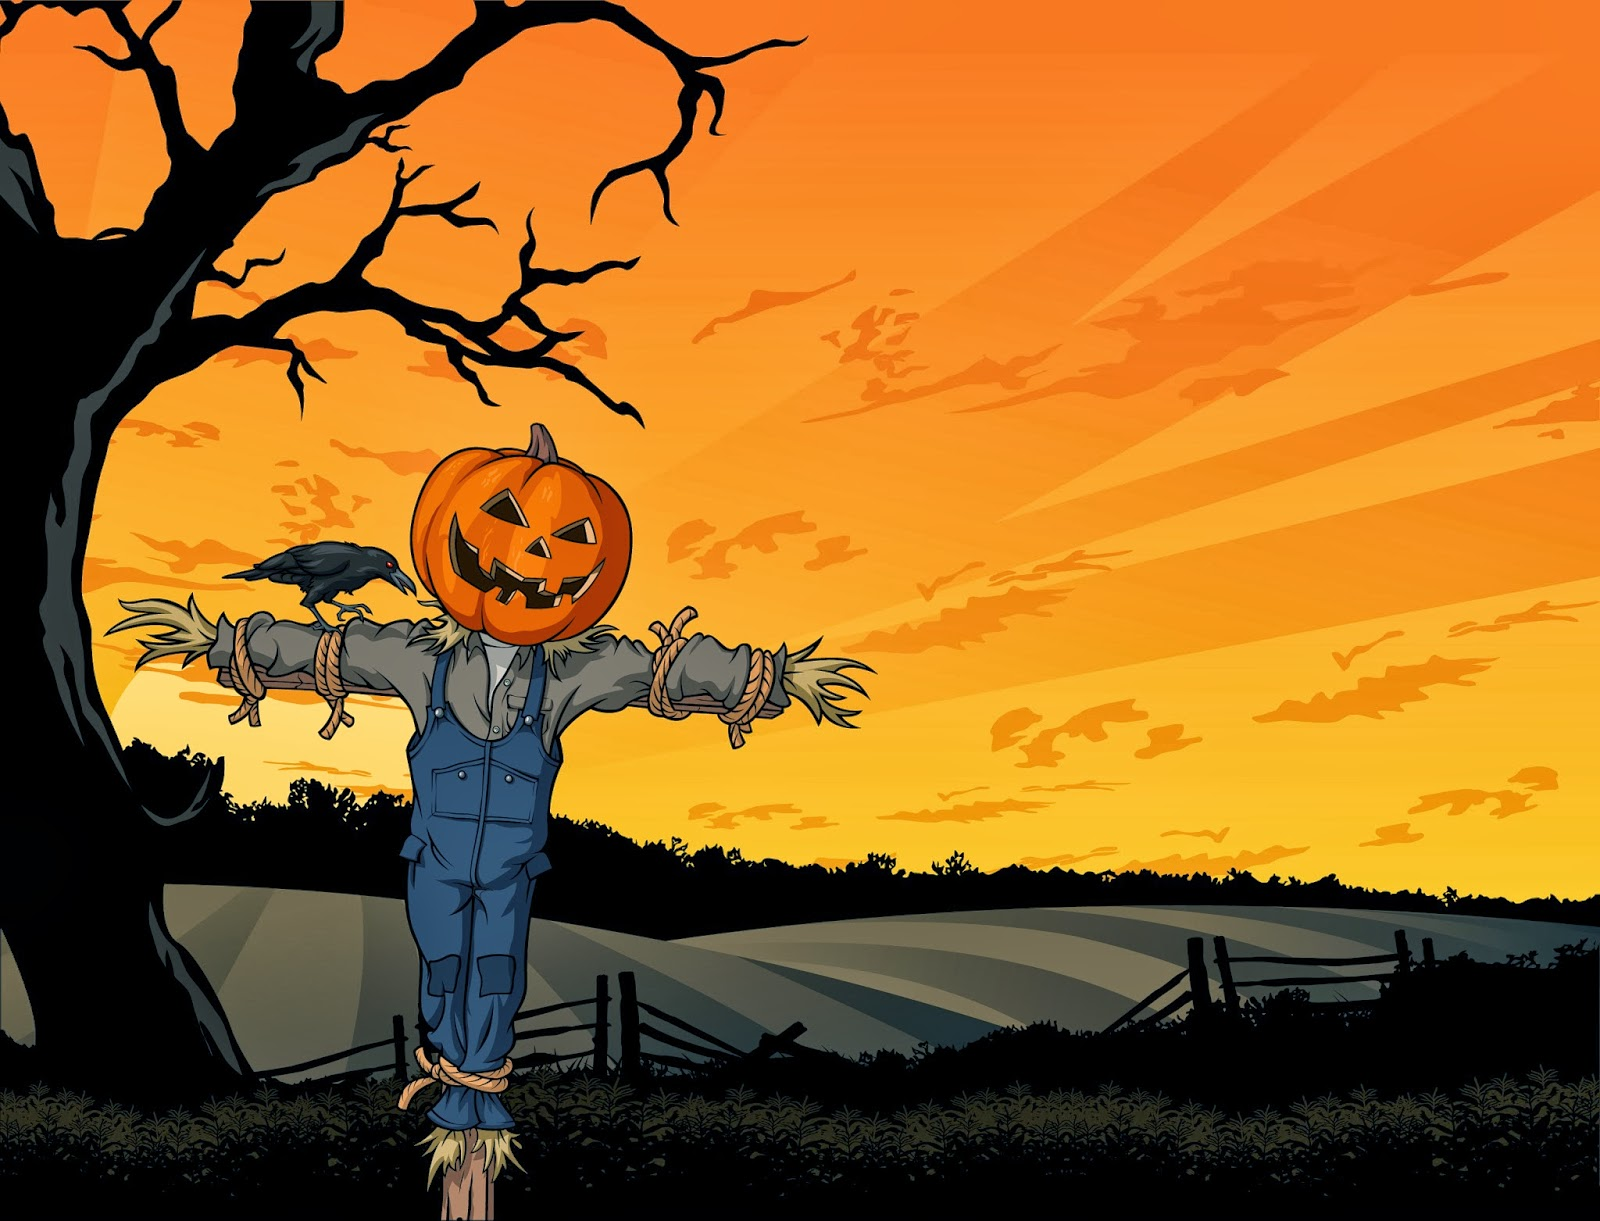 Halloween HD Wallpaper 1080P Images Backgrounds Collection | Wallpapers HD Collection